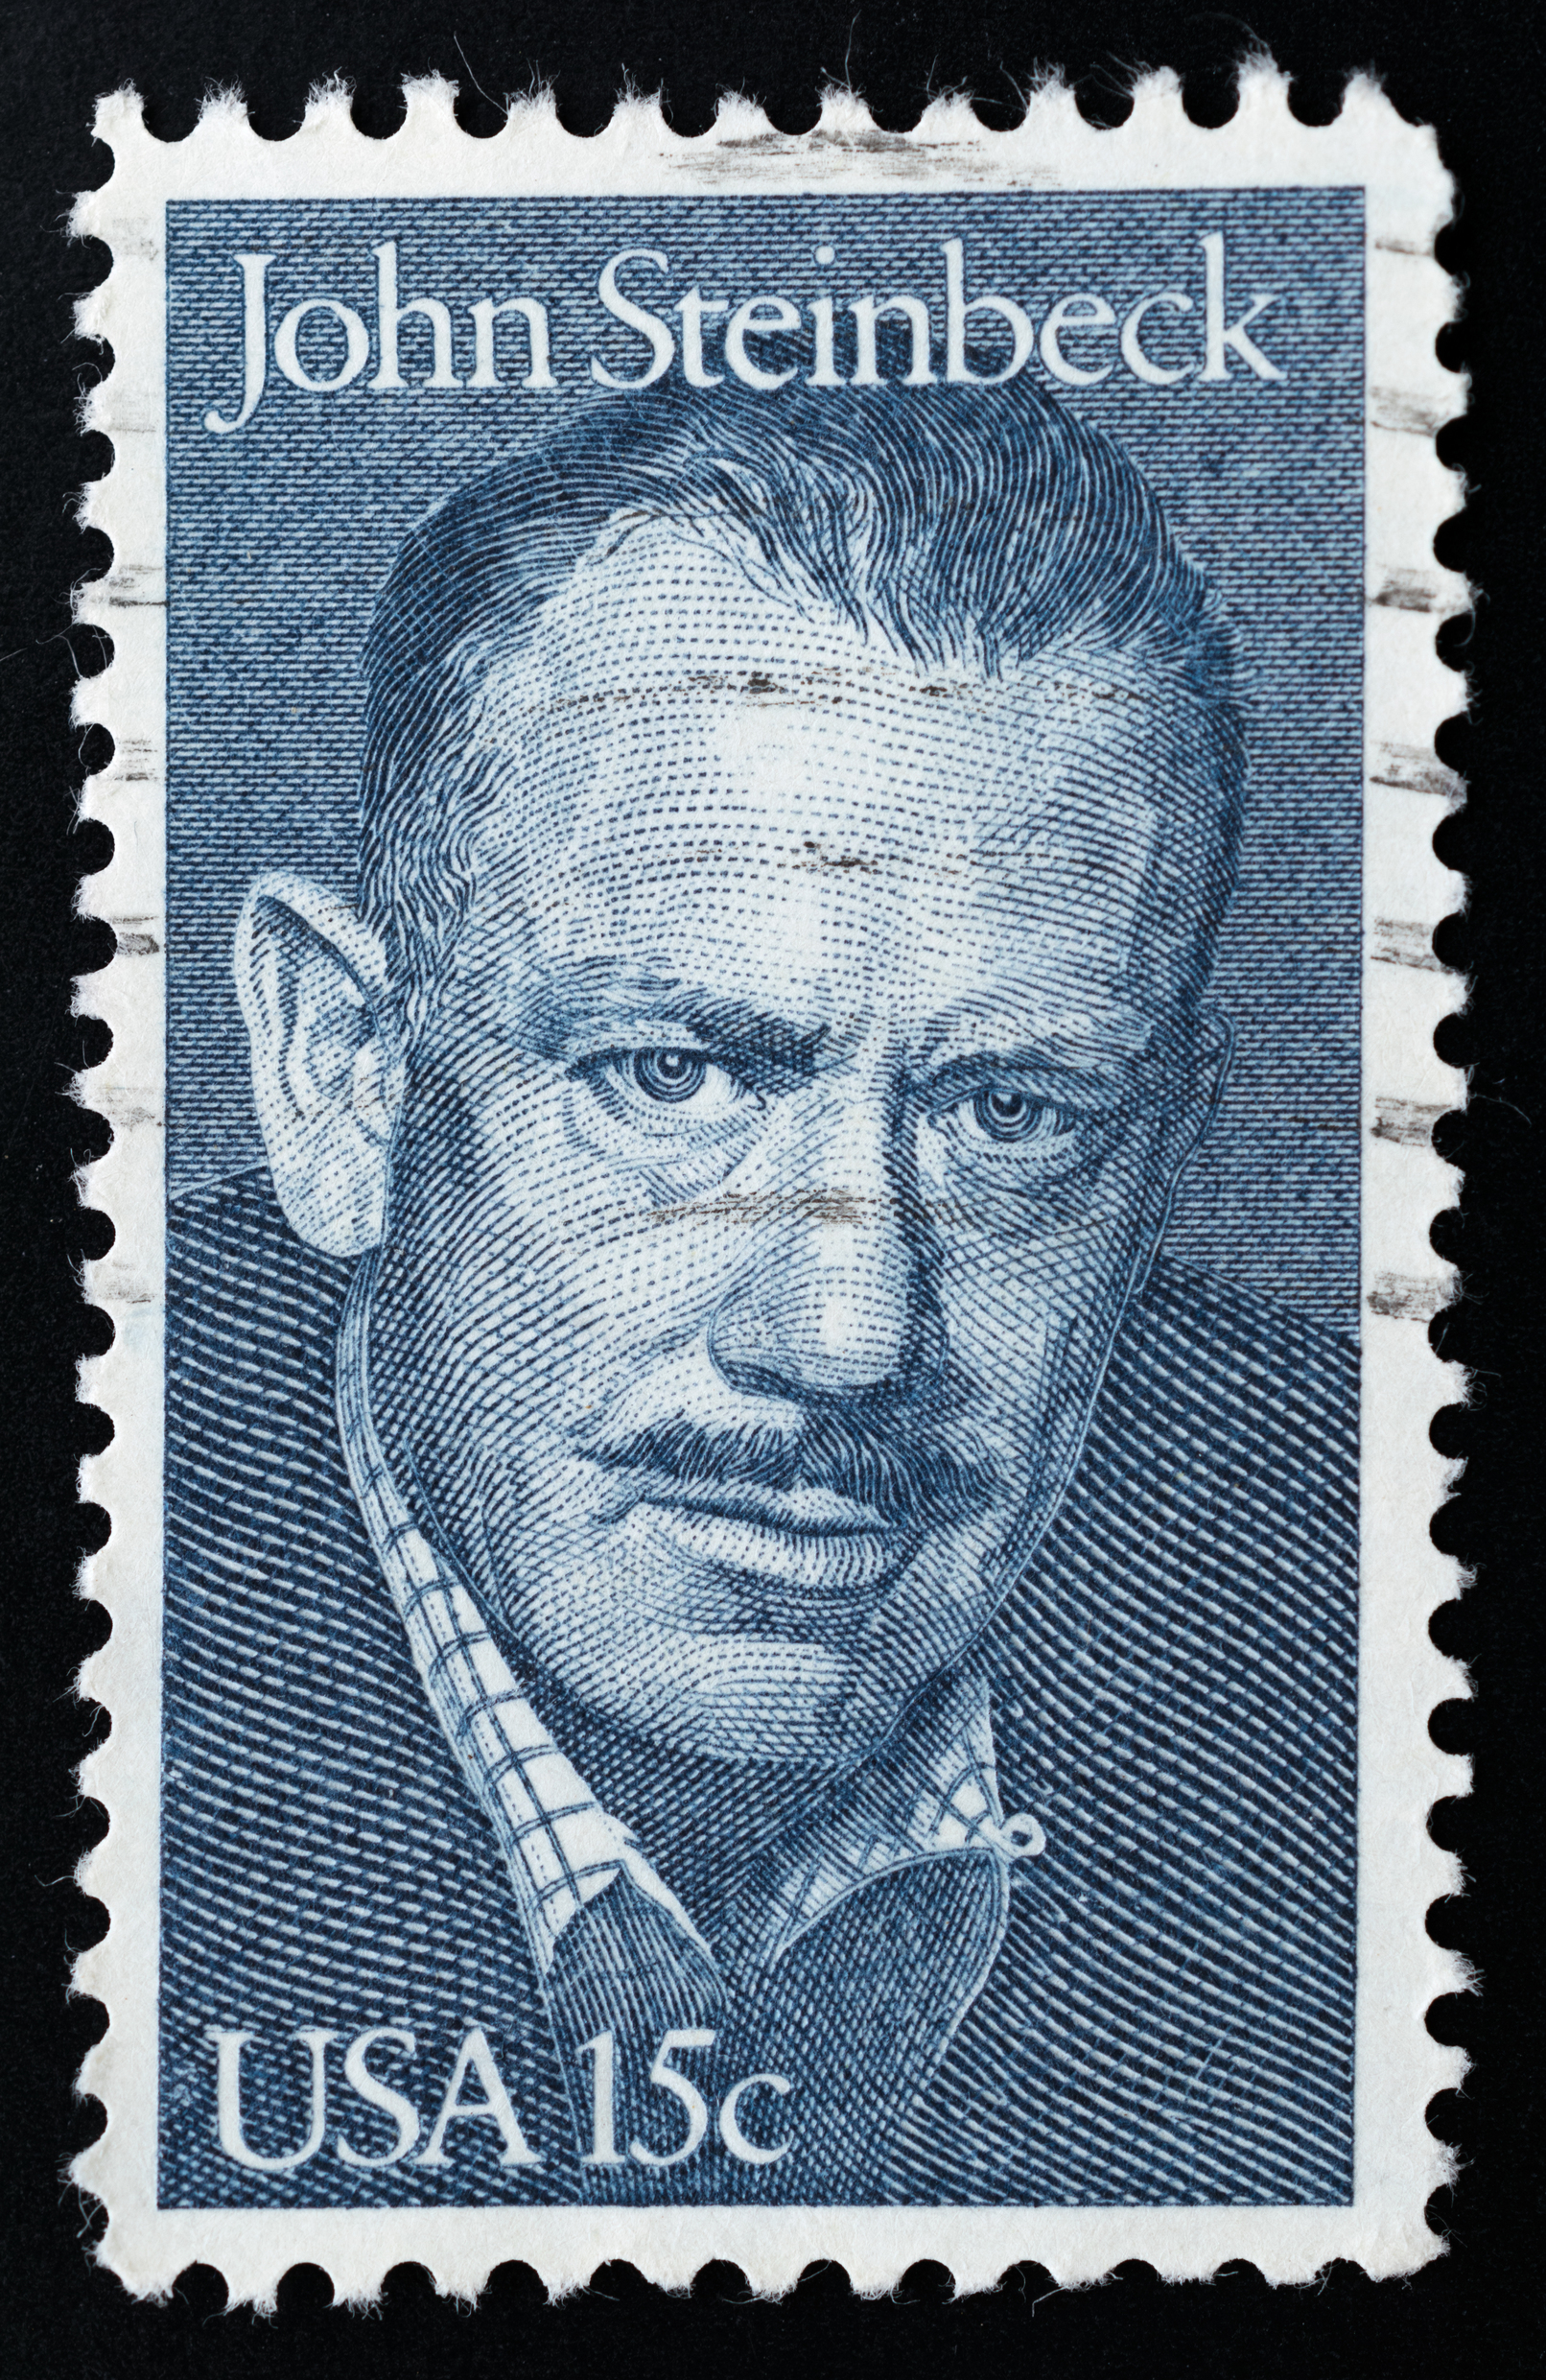 U.S. Court of Appeals for the Ninth Circuit Rules in Litigation Over John Steinbeck's Estate